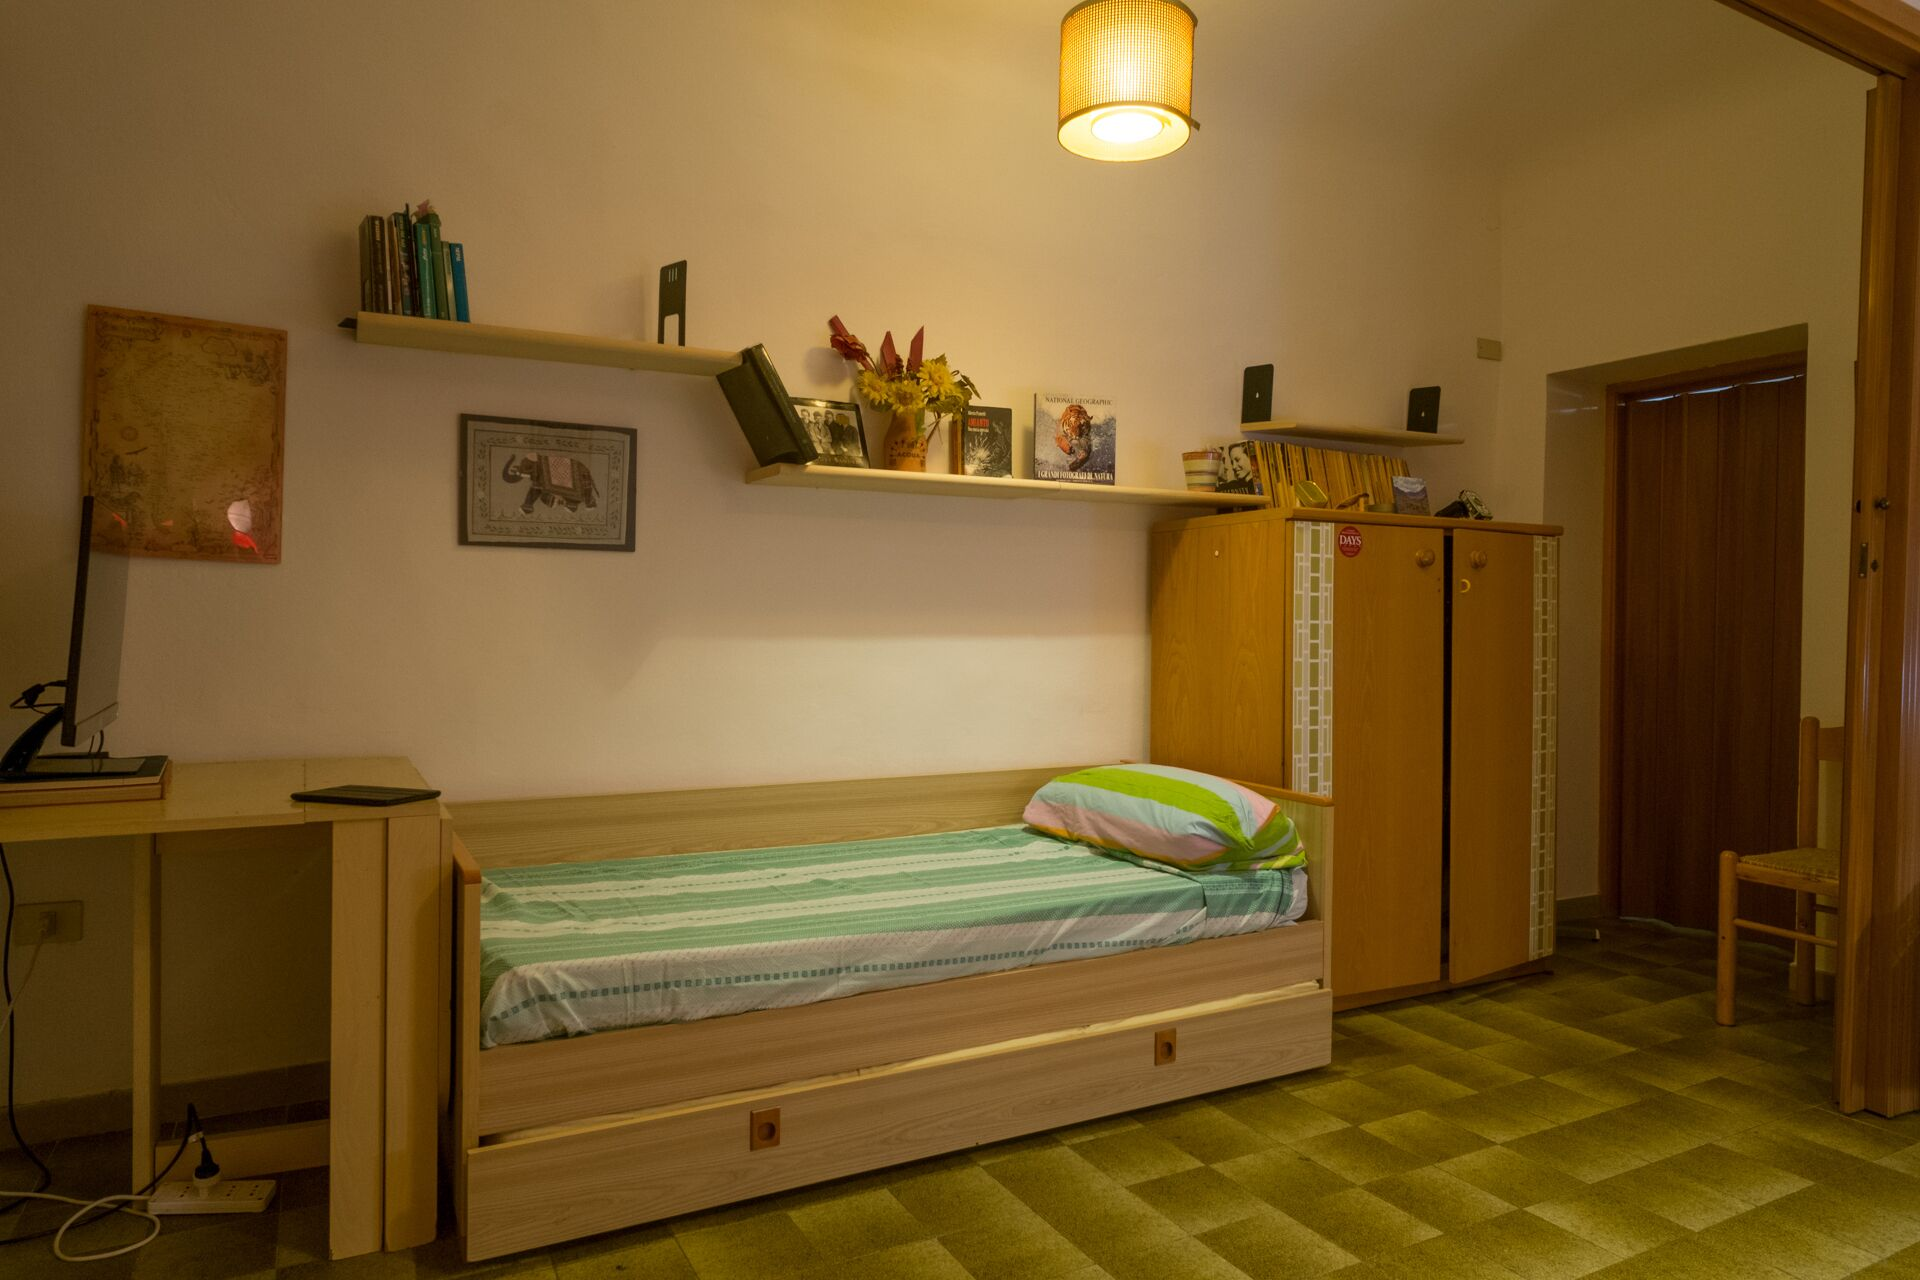 Holiday Home in the Ancient Historic Center of Portoferraio